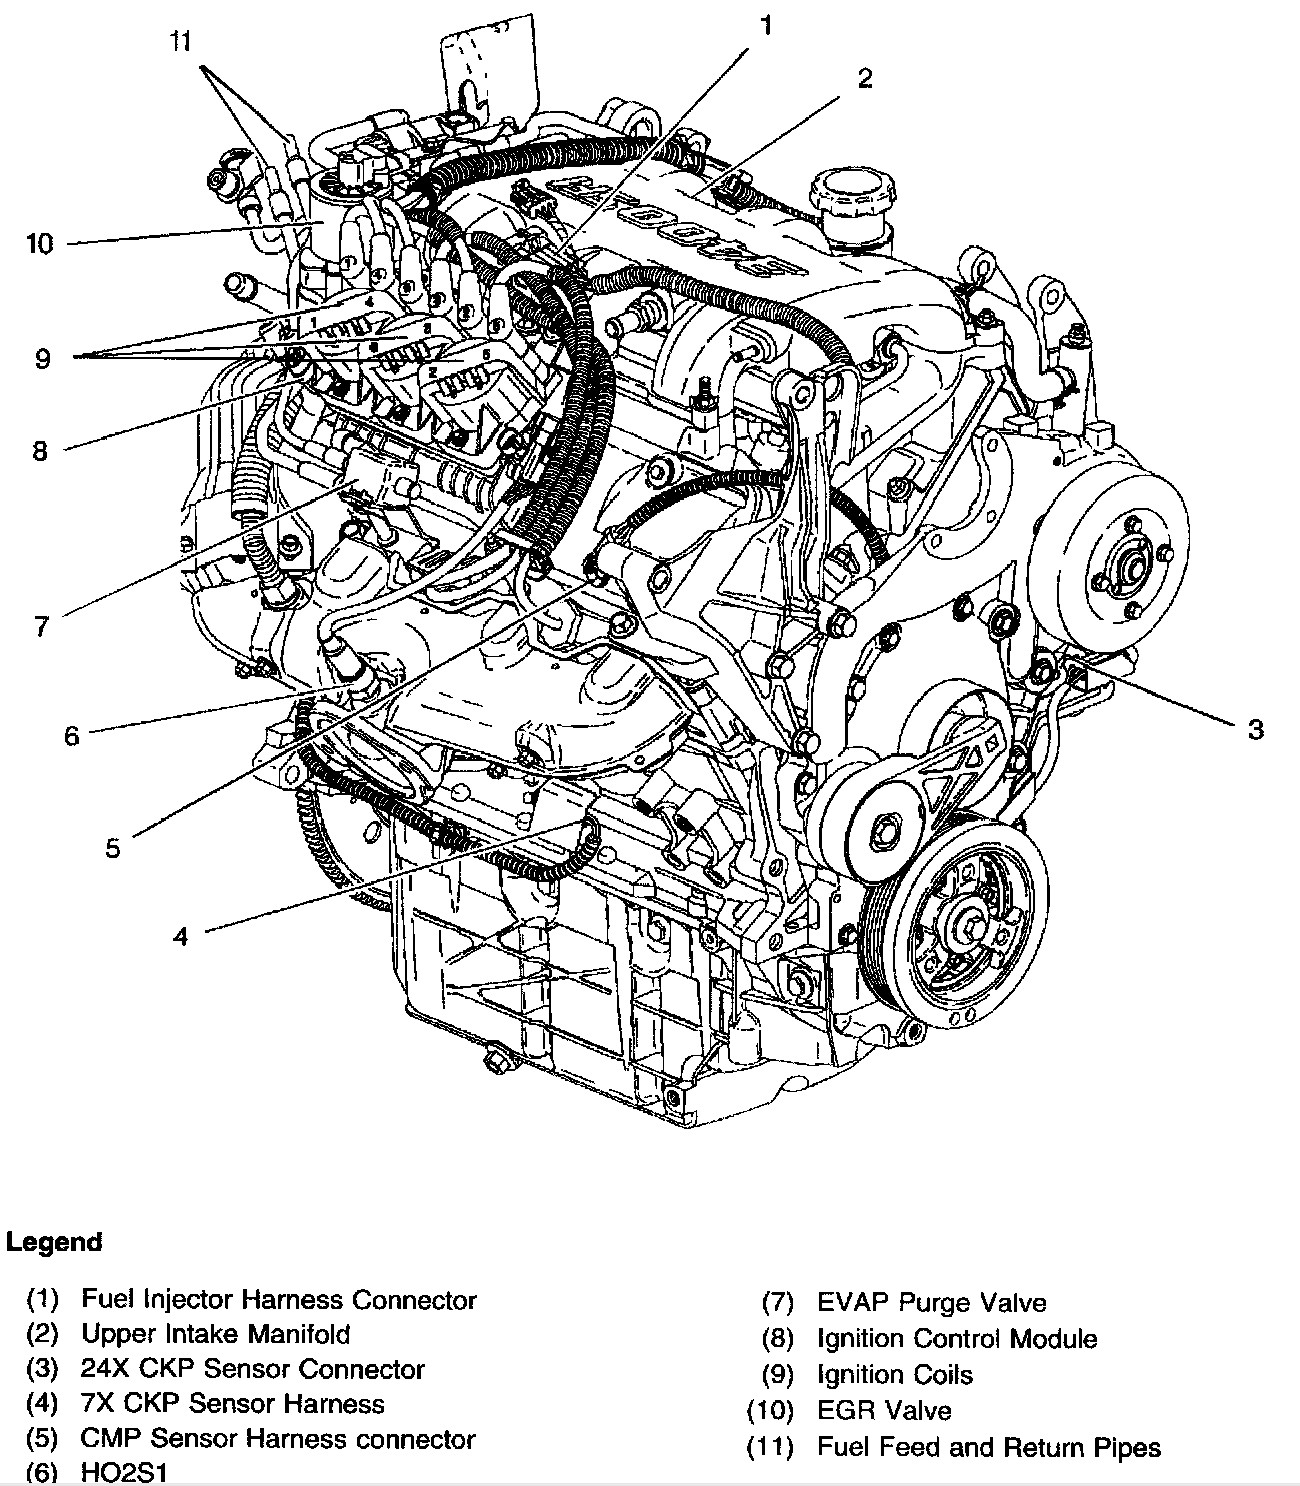 hight resolution of hyundai 3500 v6 engine diagram use wiring diagram 2004 3 5l hyundai engine diagram wiring diagram